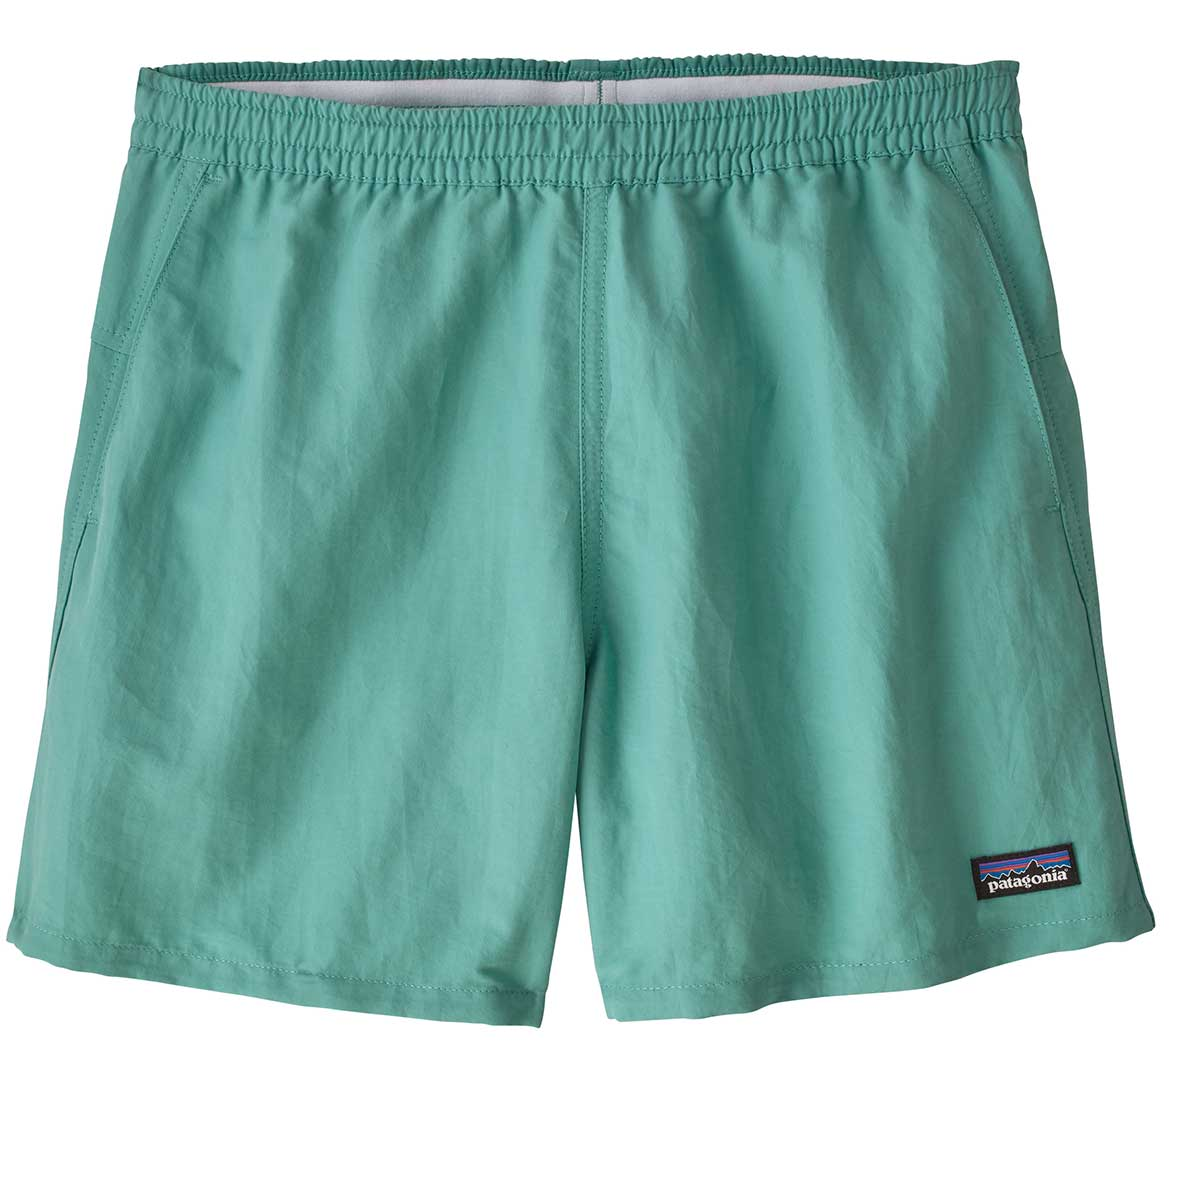 Patagonia women's Baggies Shorts in Light Beryl Green front view